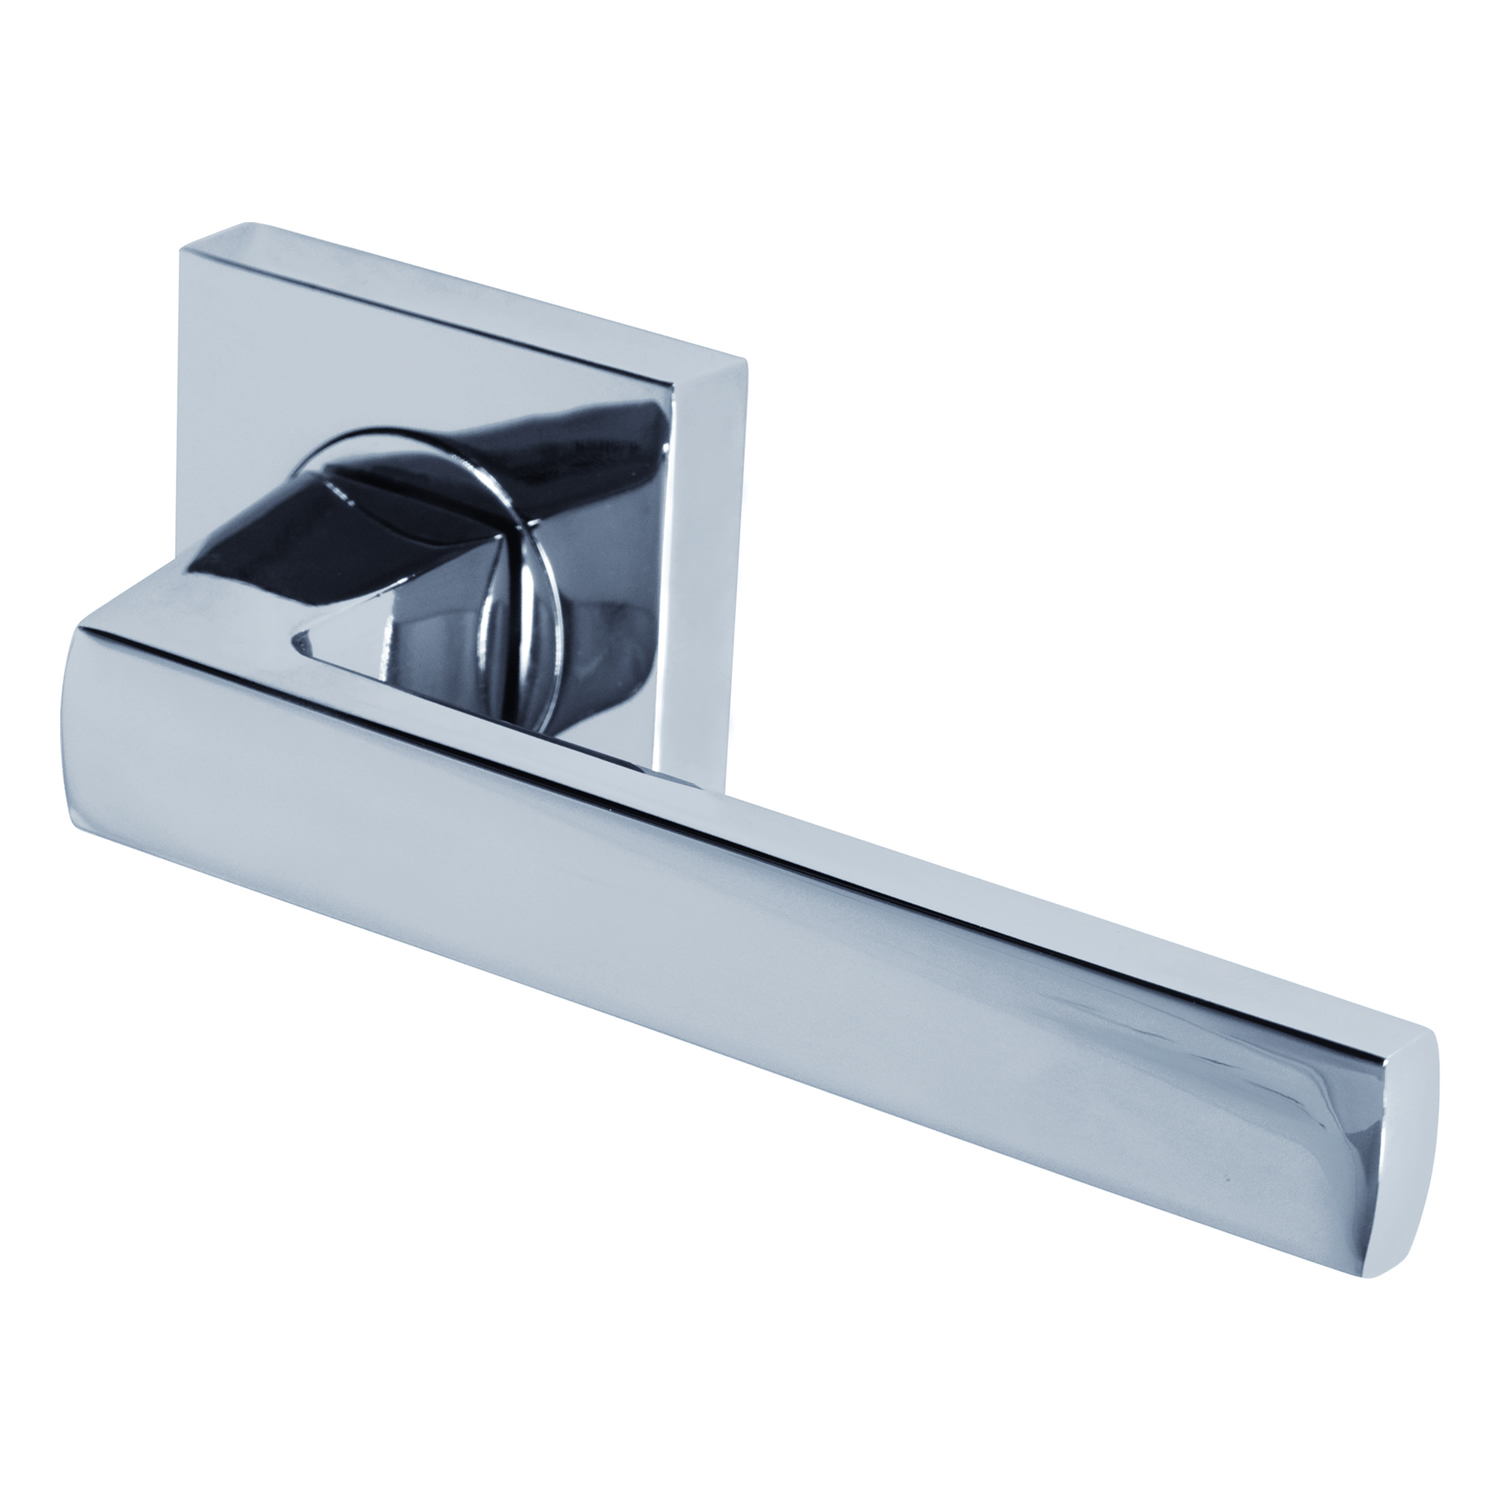 Door Handles Designer Modern Lever Door Handles On Rose Mortice Latch Handles Internal Doors Home Furniture Diy Tohoku Morinagamilk Co Jp